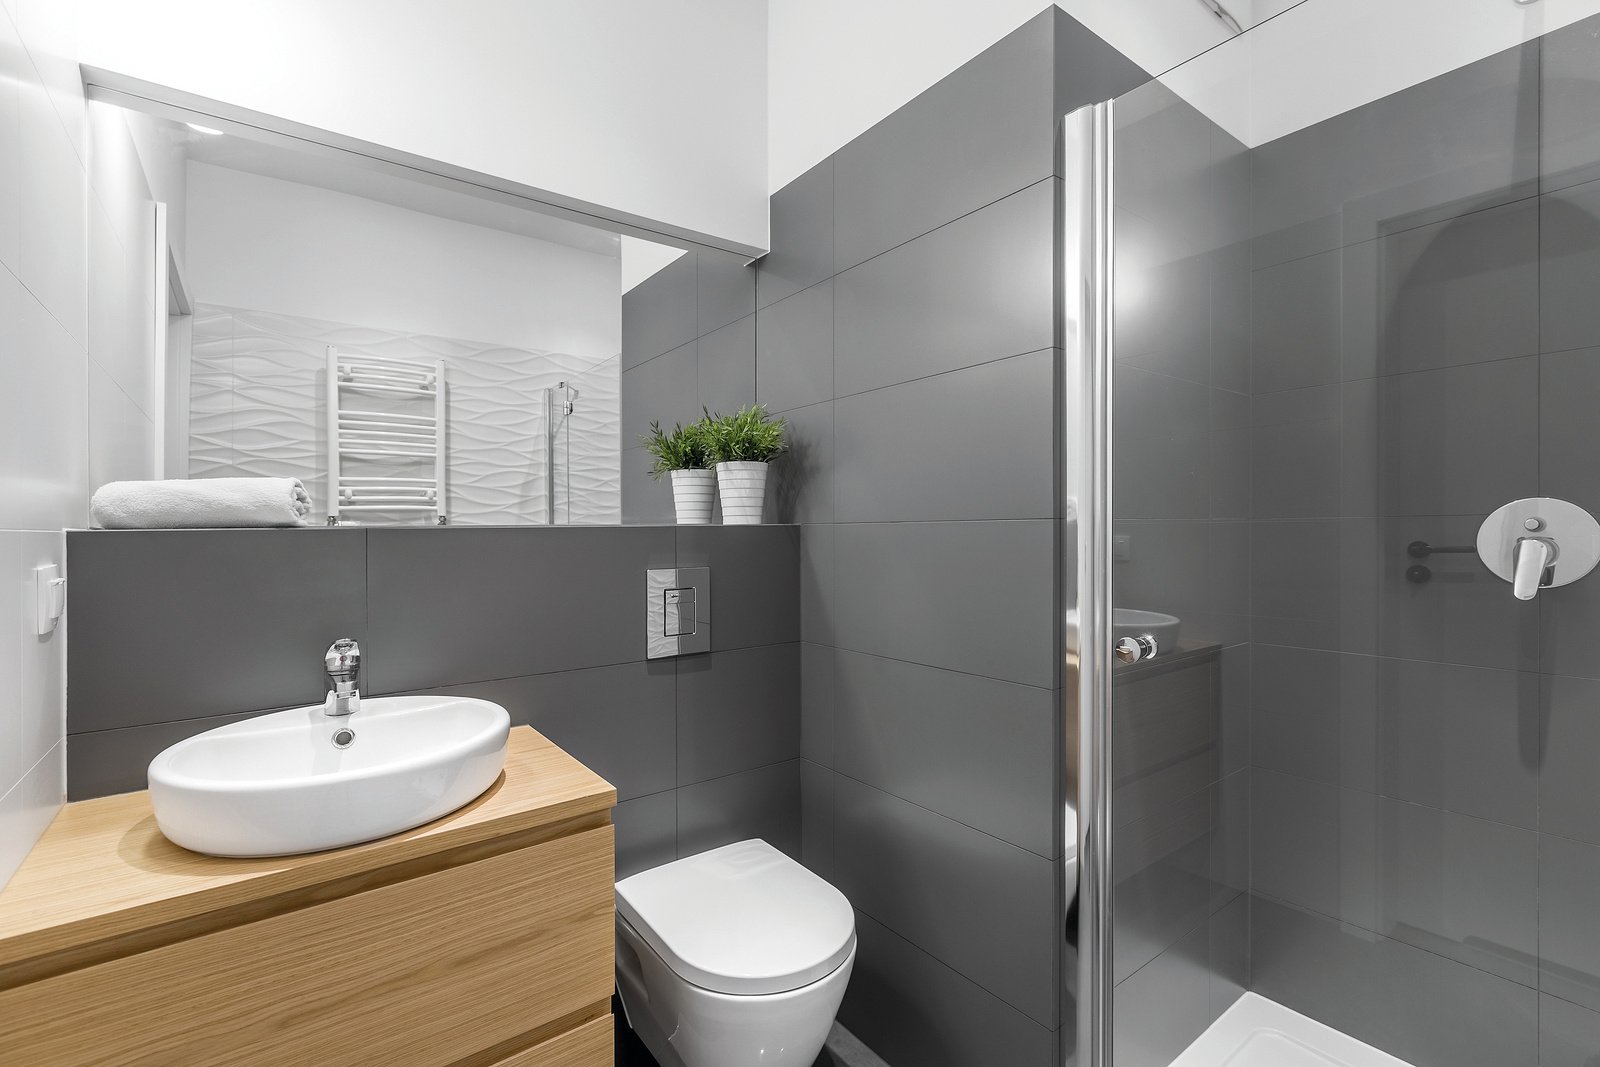 bigstock-Modern-Grey-Bathroom-With-Show-179830993